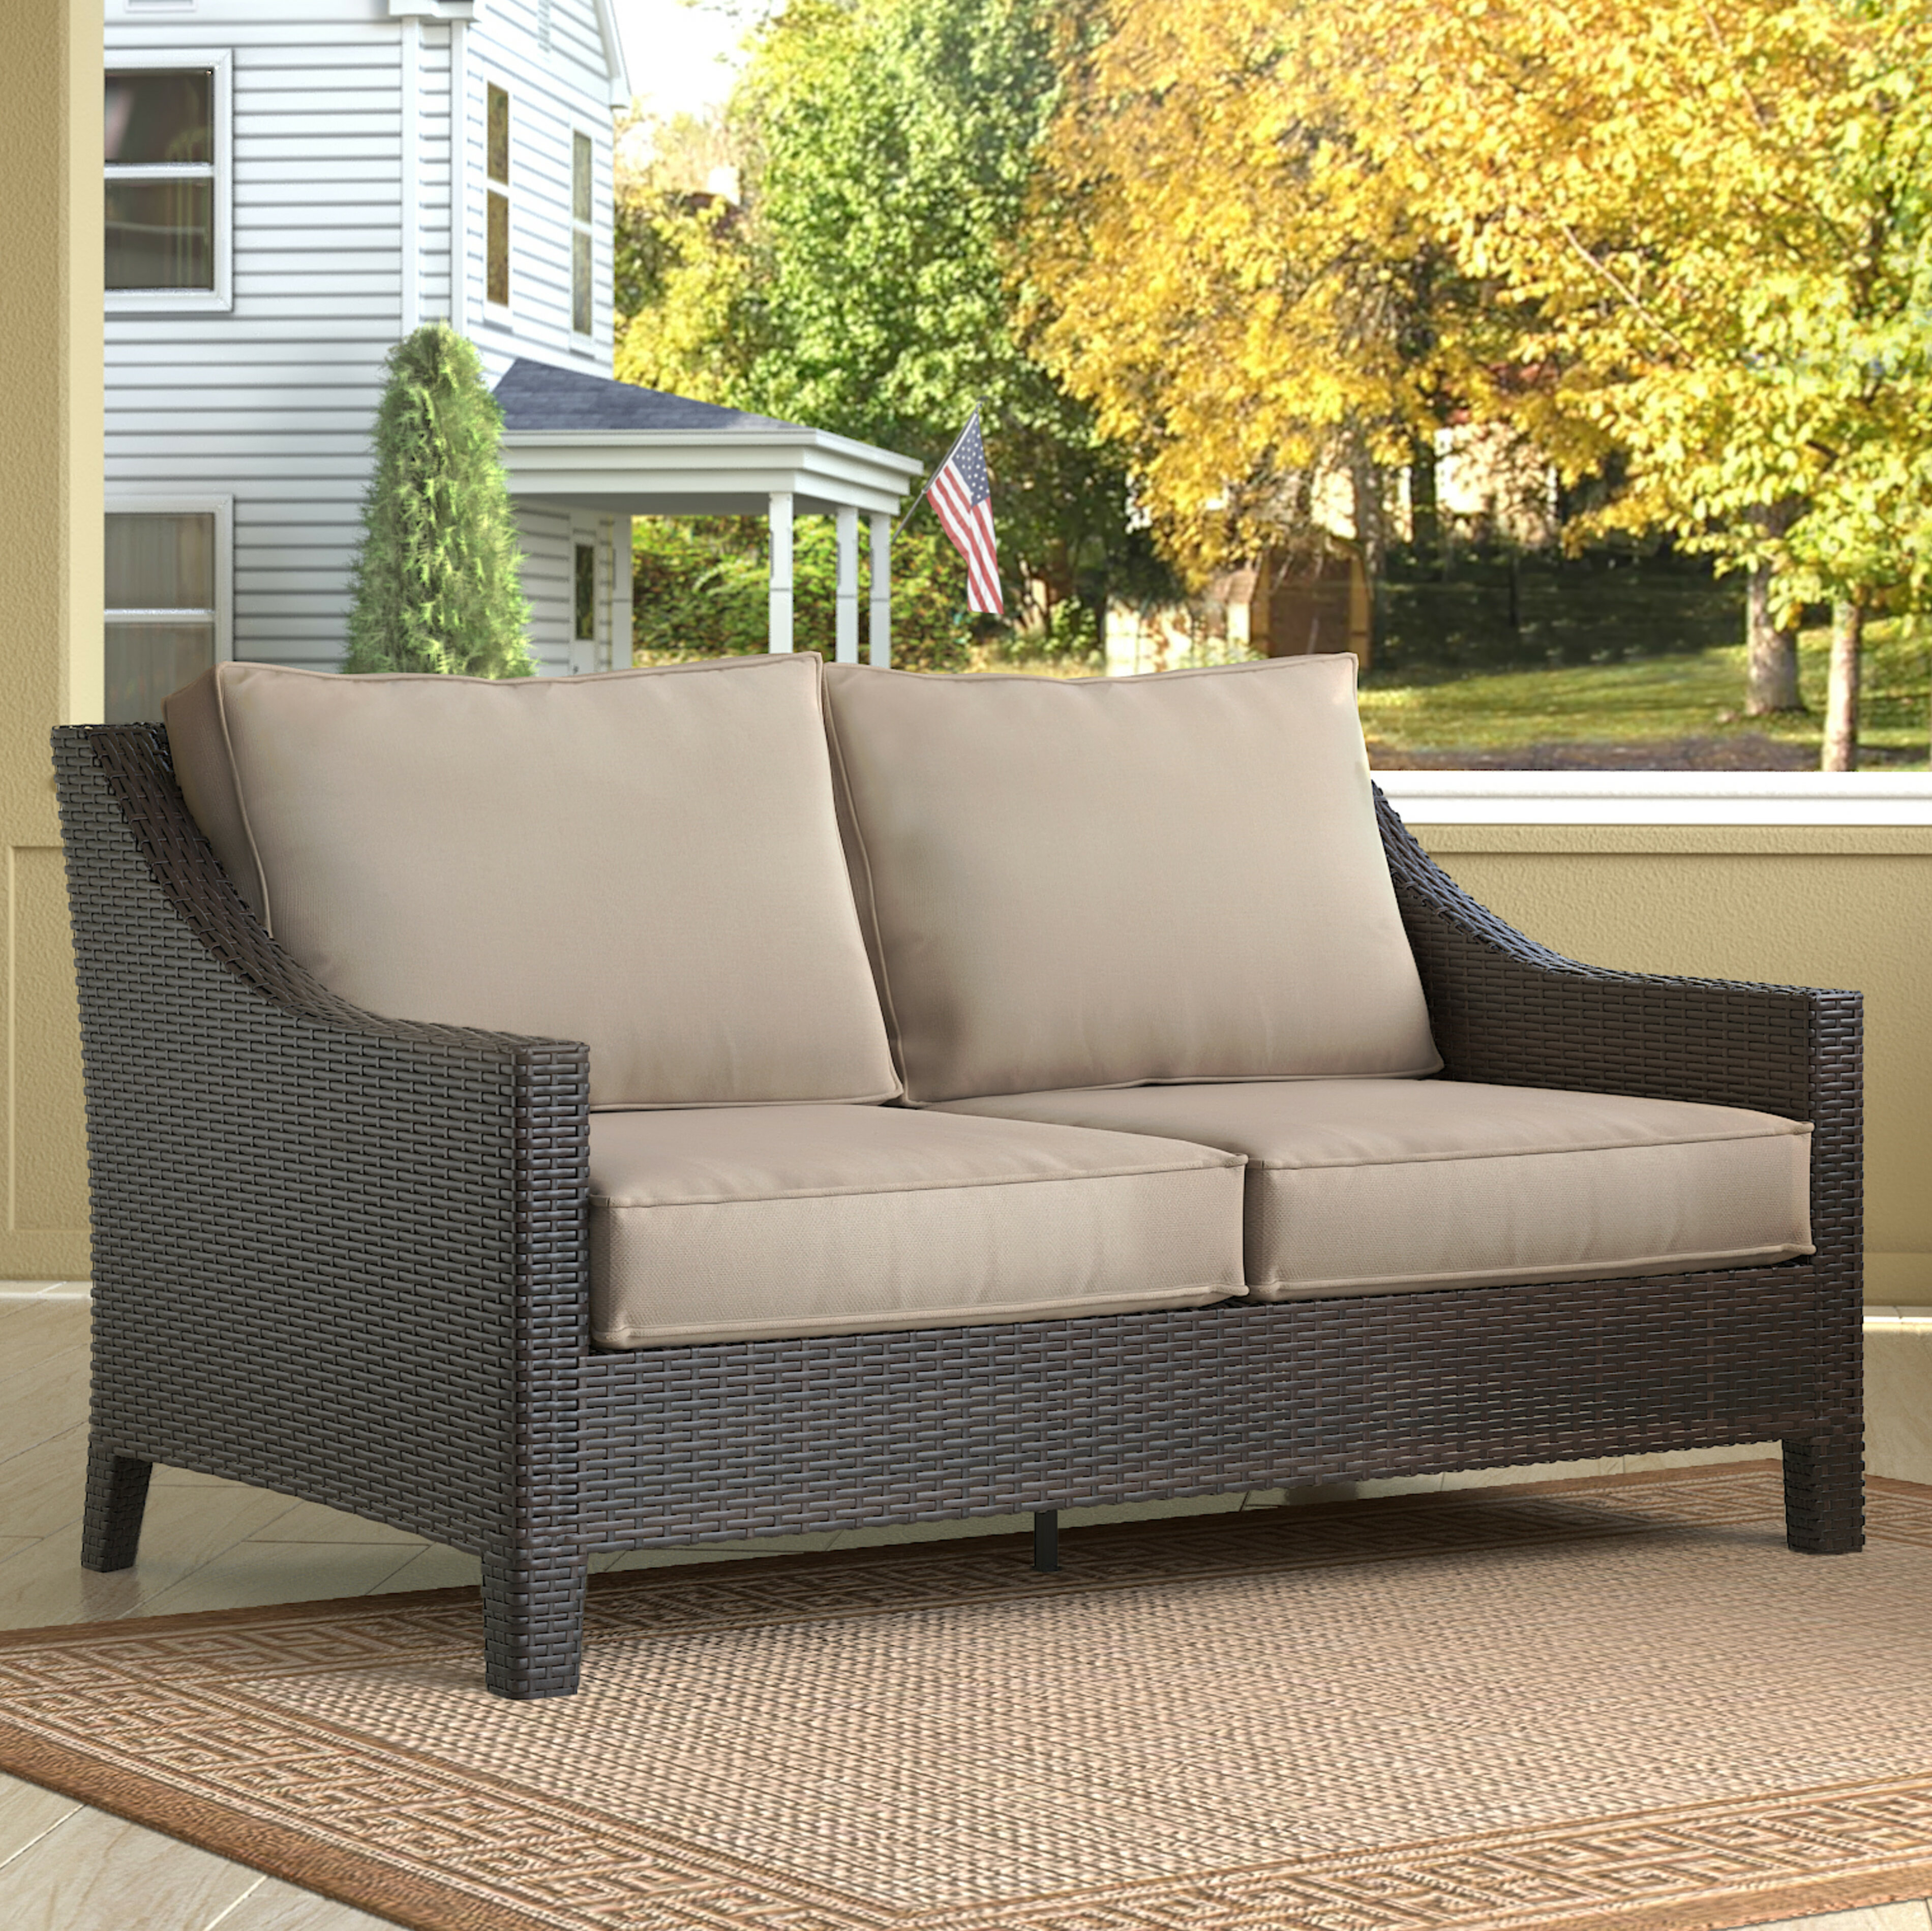 Tahoe Outdoor Wicker Loveseat With Cushions